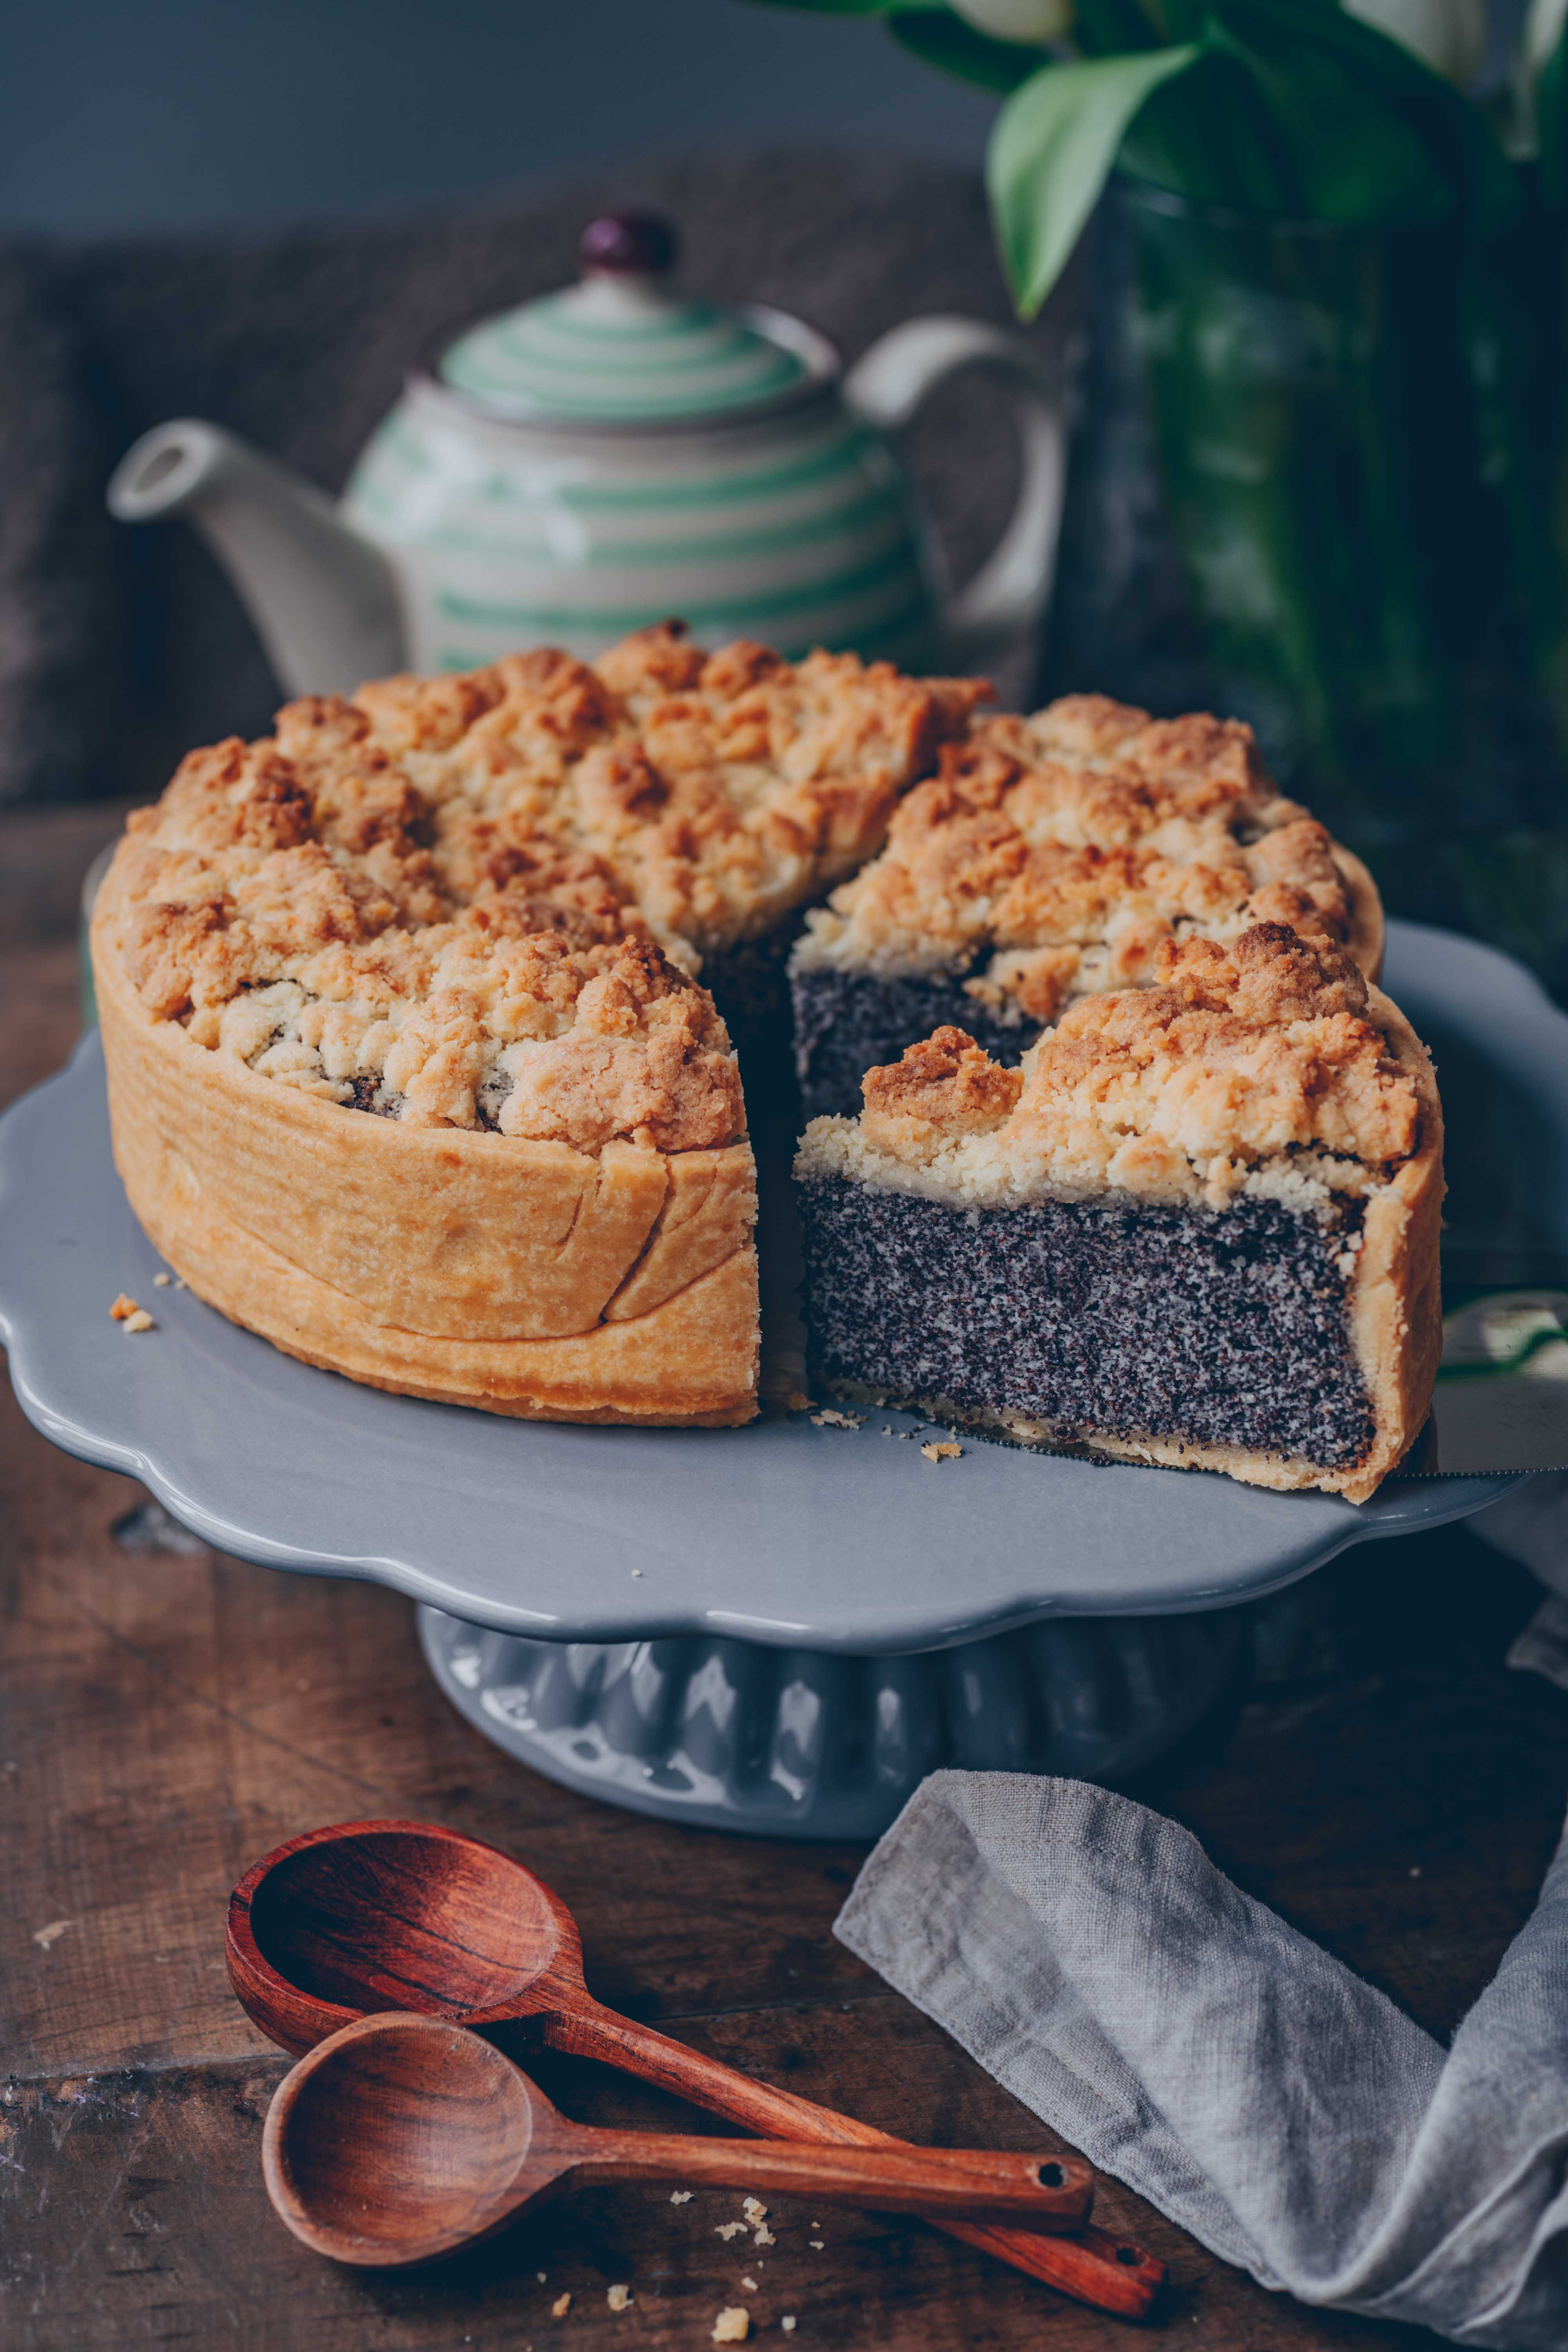 Poppy Seed Crumble Cheesecake